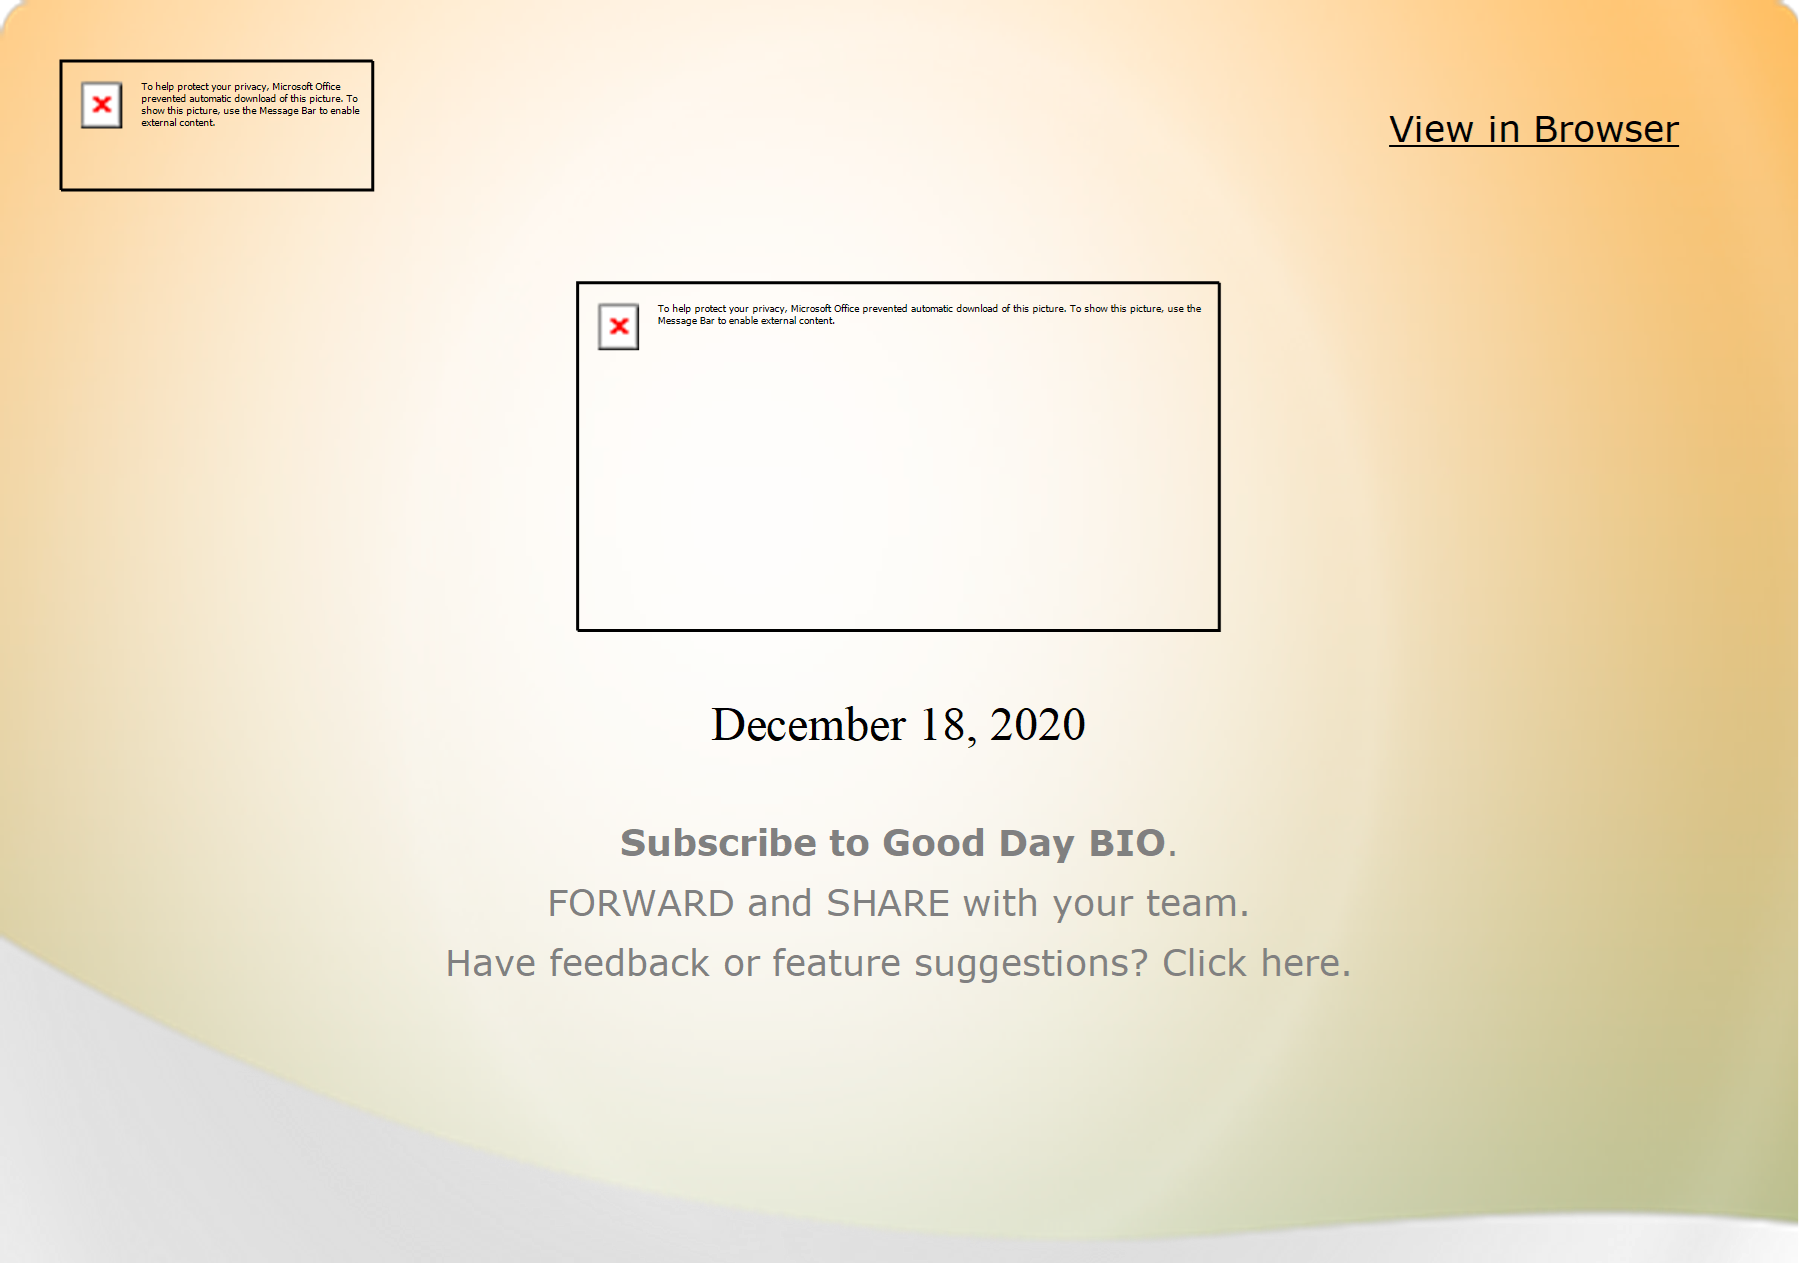 View in Browser                  December 18, 2020  Subscribe to Good Day BIO.   FORWARD and SHARE with your team.   Have feedback or feature suggestions? Click here.